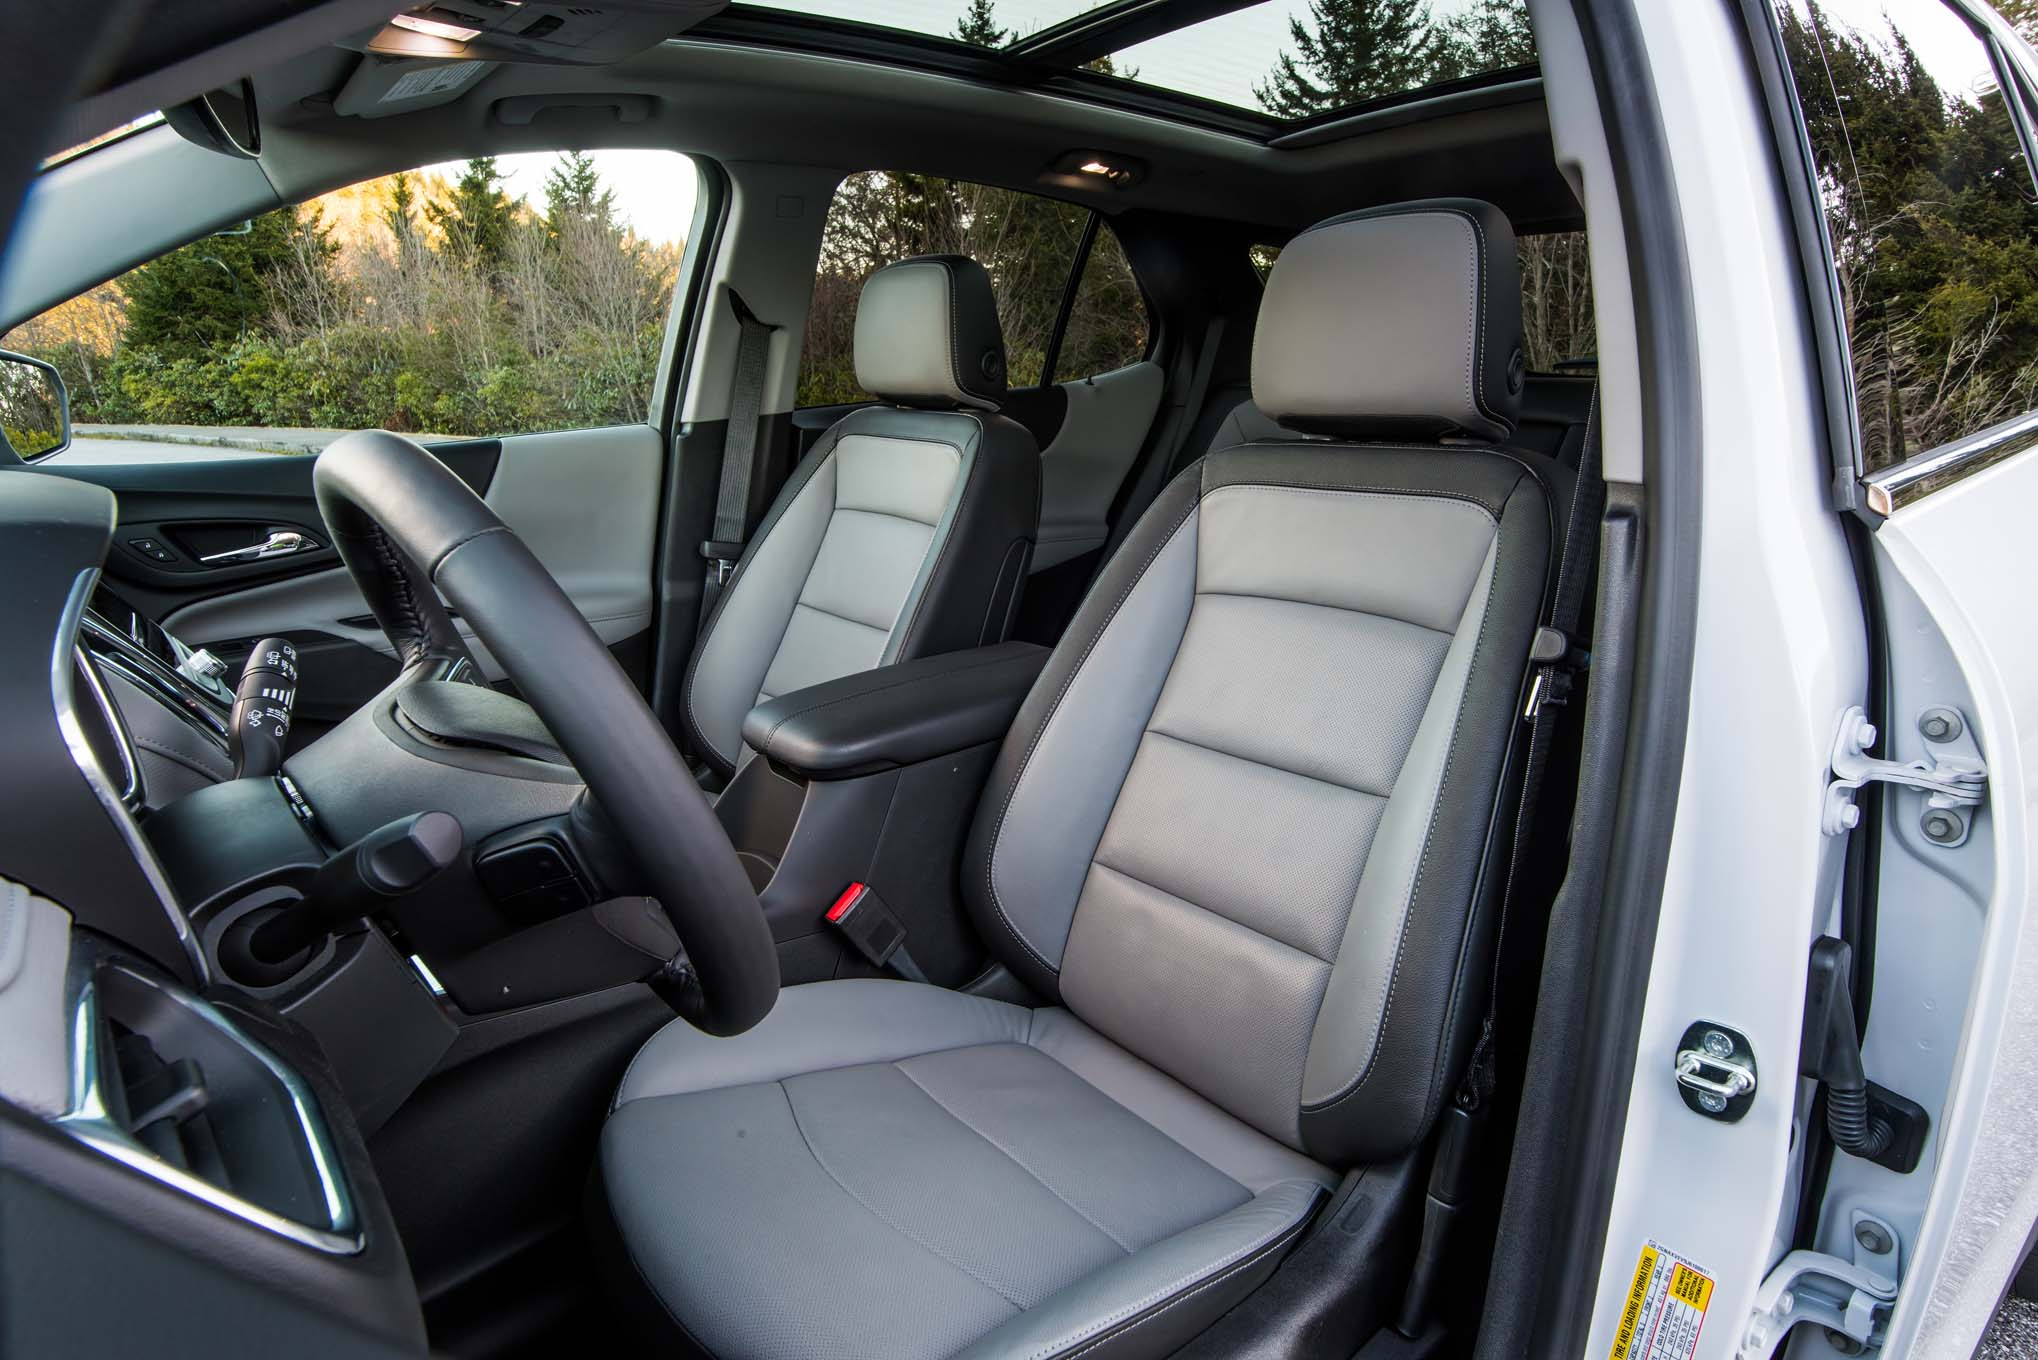 2018 Chevrolet Equinox First Drive Review | Automobile Magazine